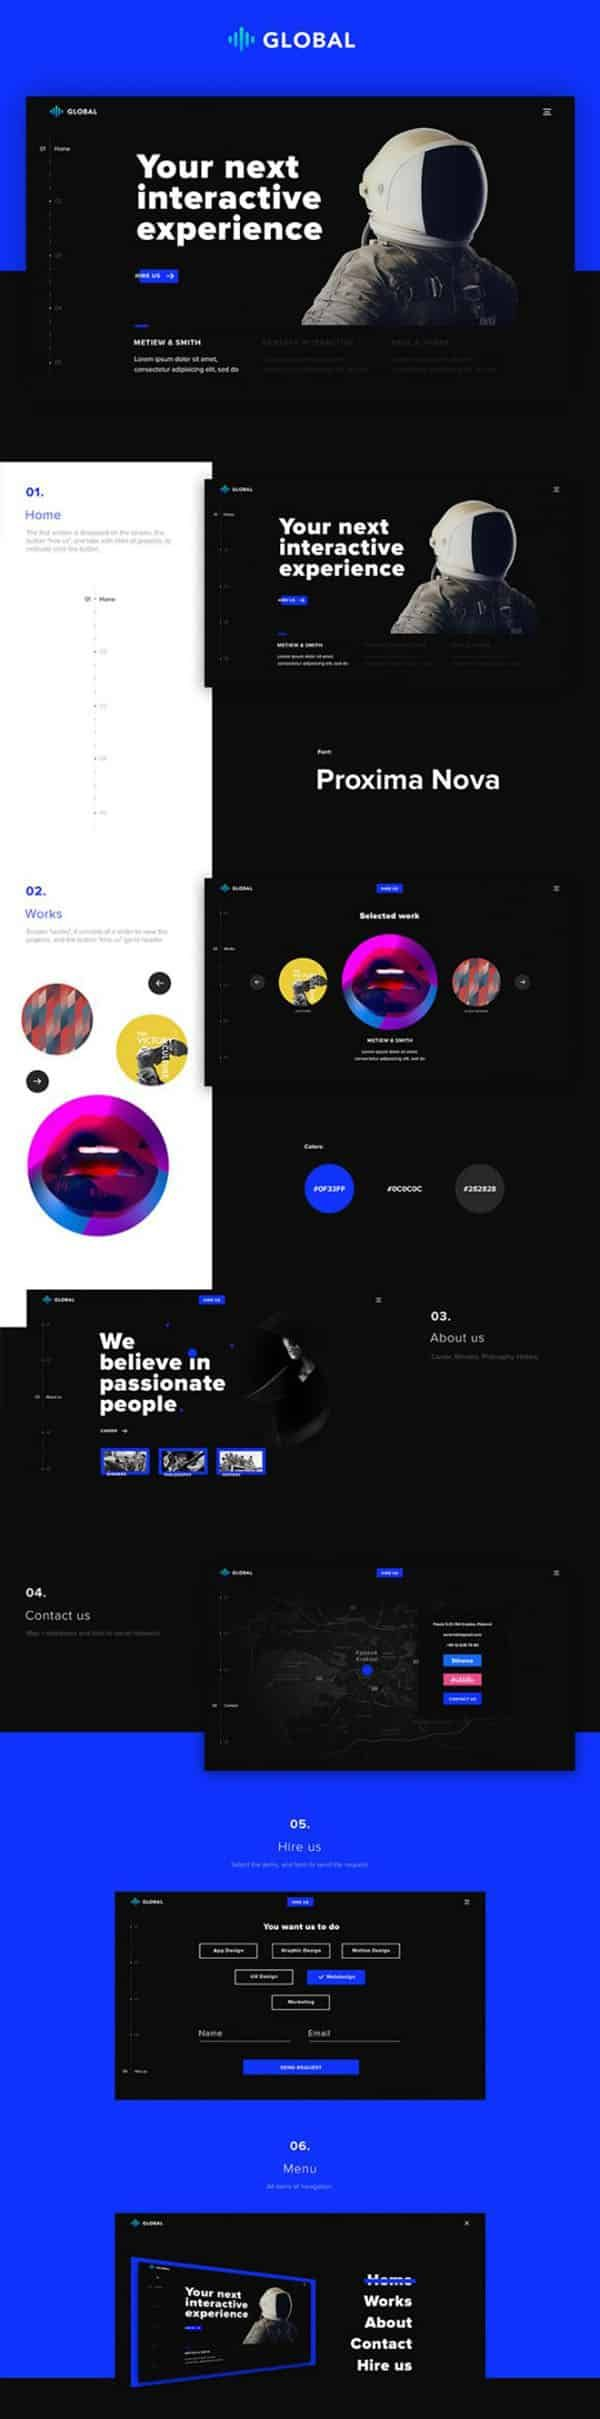 Download a selection of the best Photoshop website templates for your next web design project. These are layered Photoshop files to start your new project.